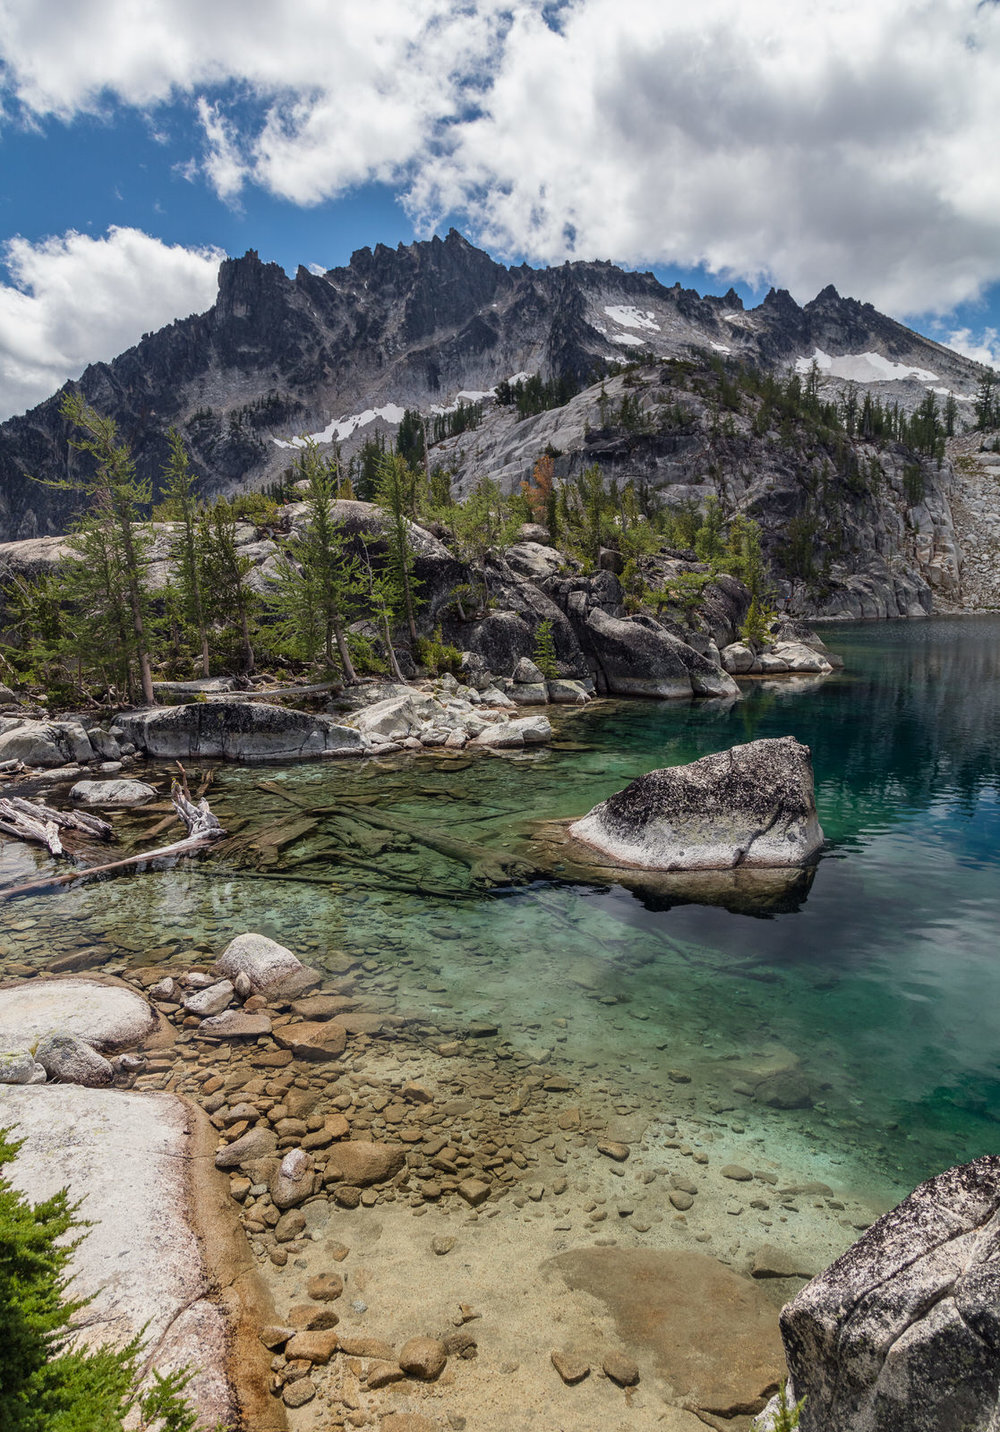 First views of the Enchantments from Lake Viviane